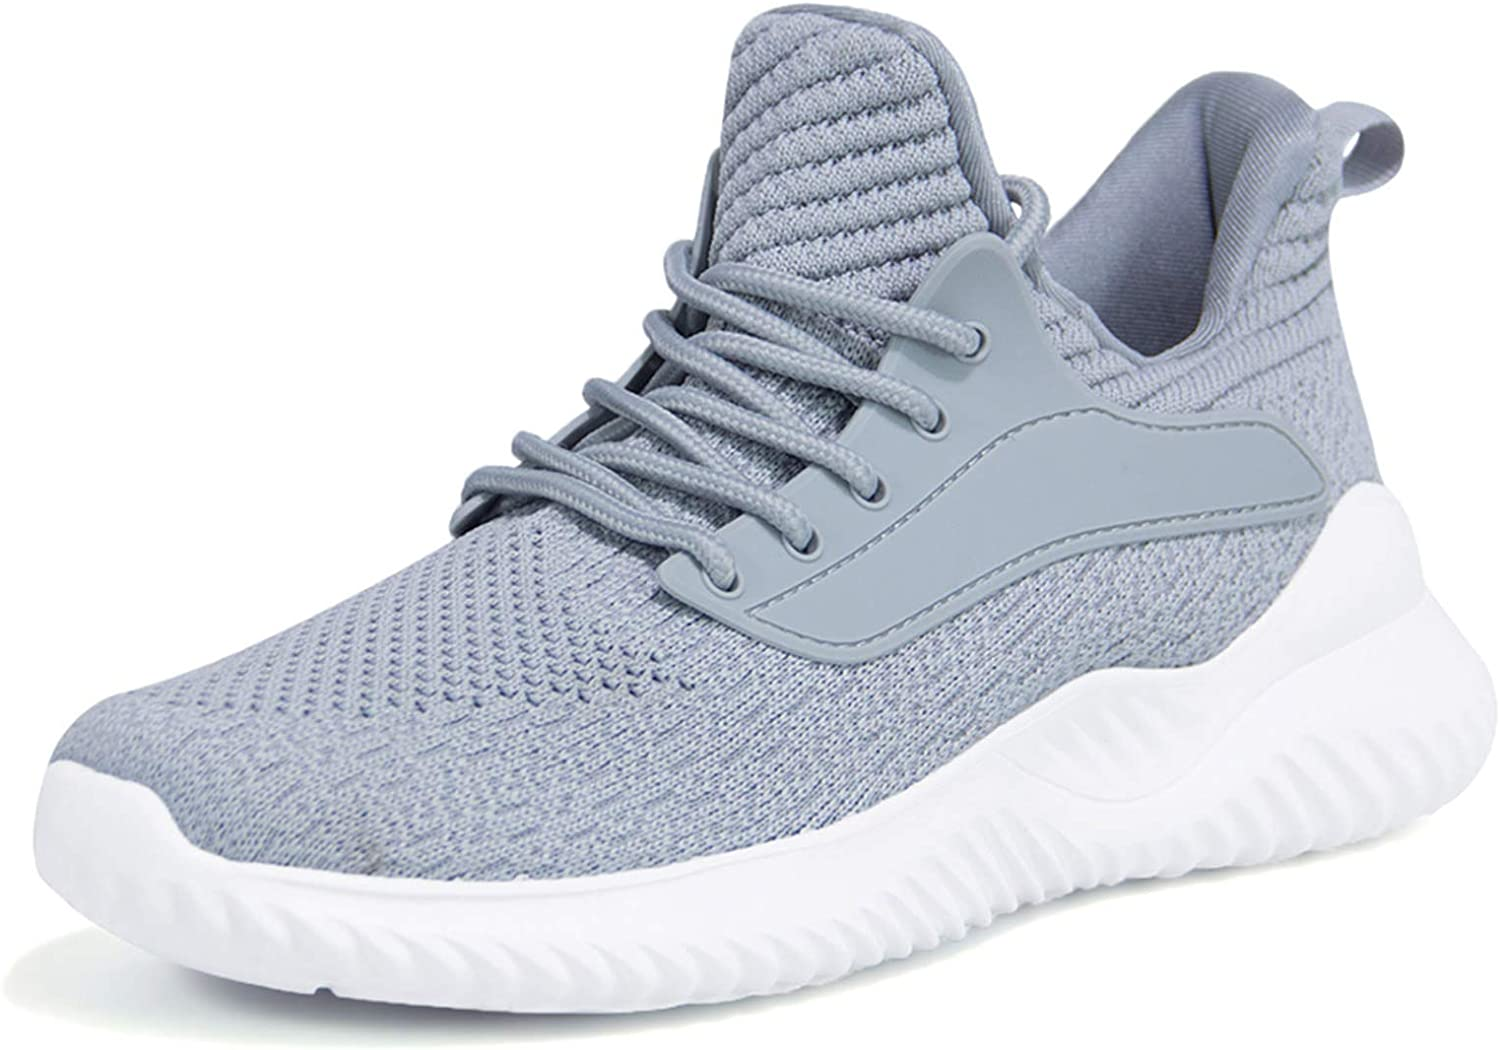 Akk Running Shoes for Men Max 45% OFF 2021 spring and summer new Comfy Memo Casual Sneakers Lightweight